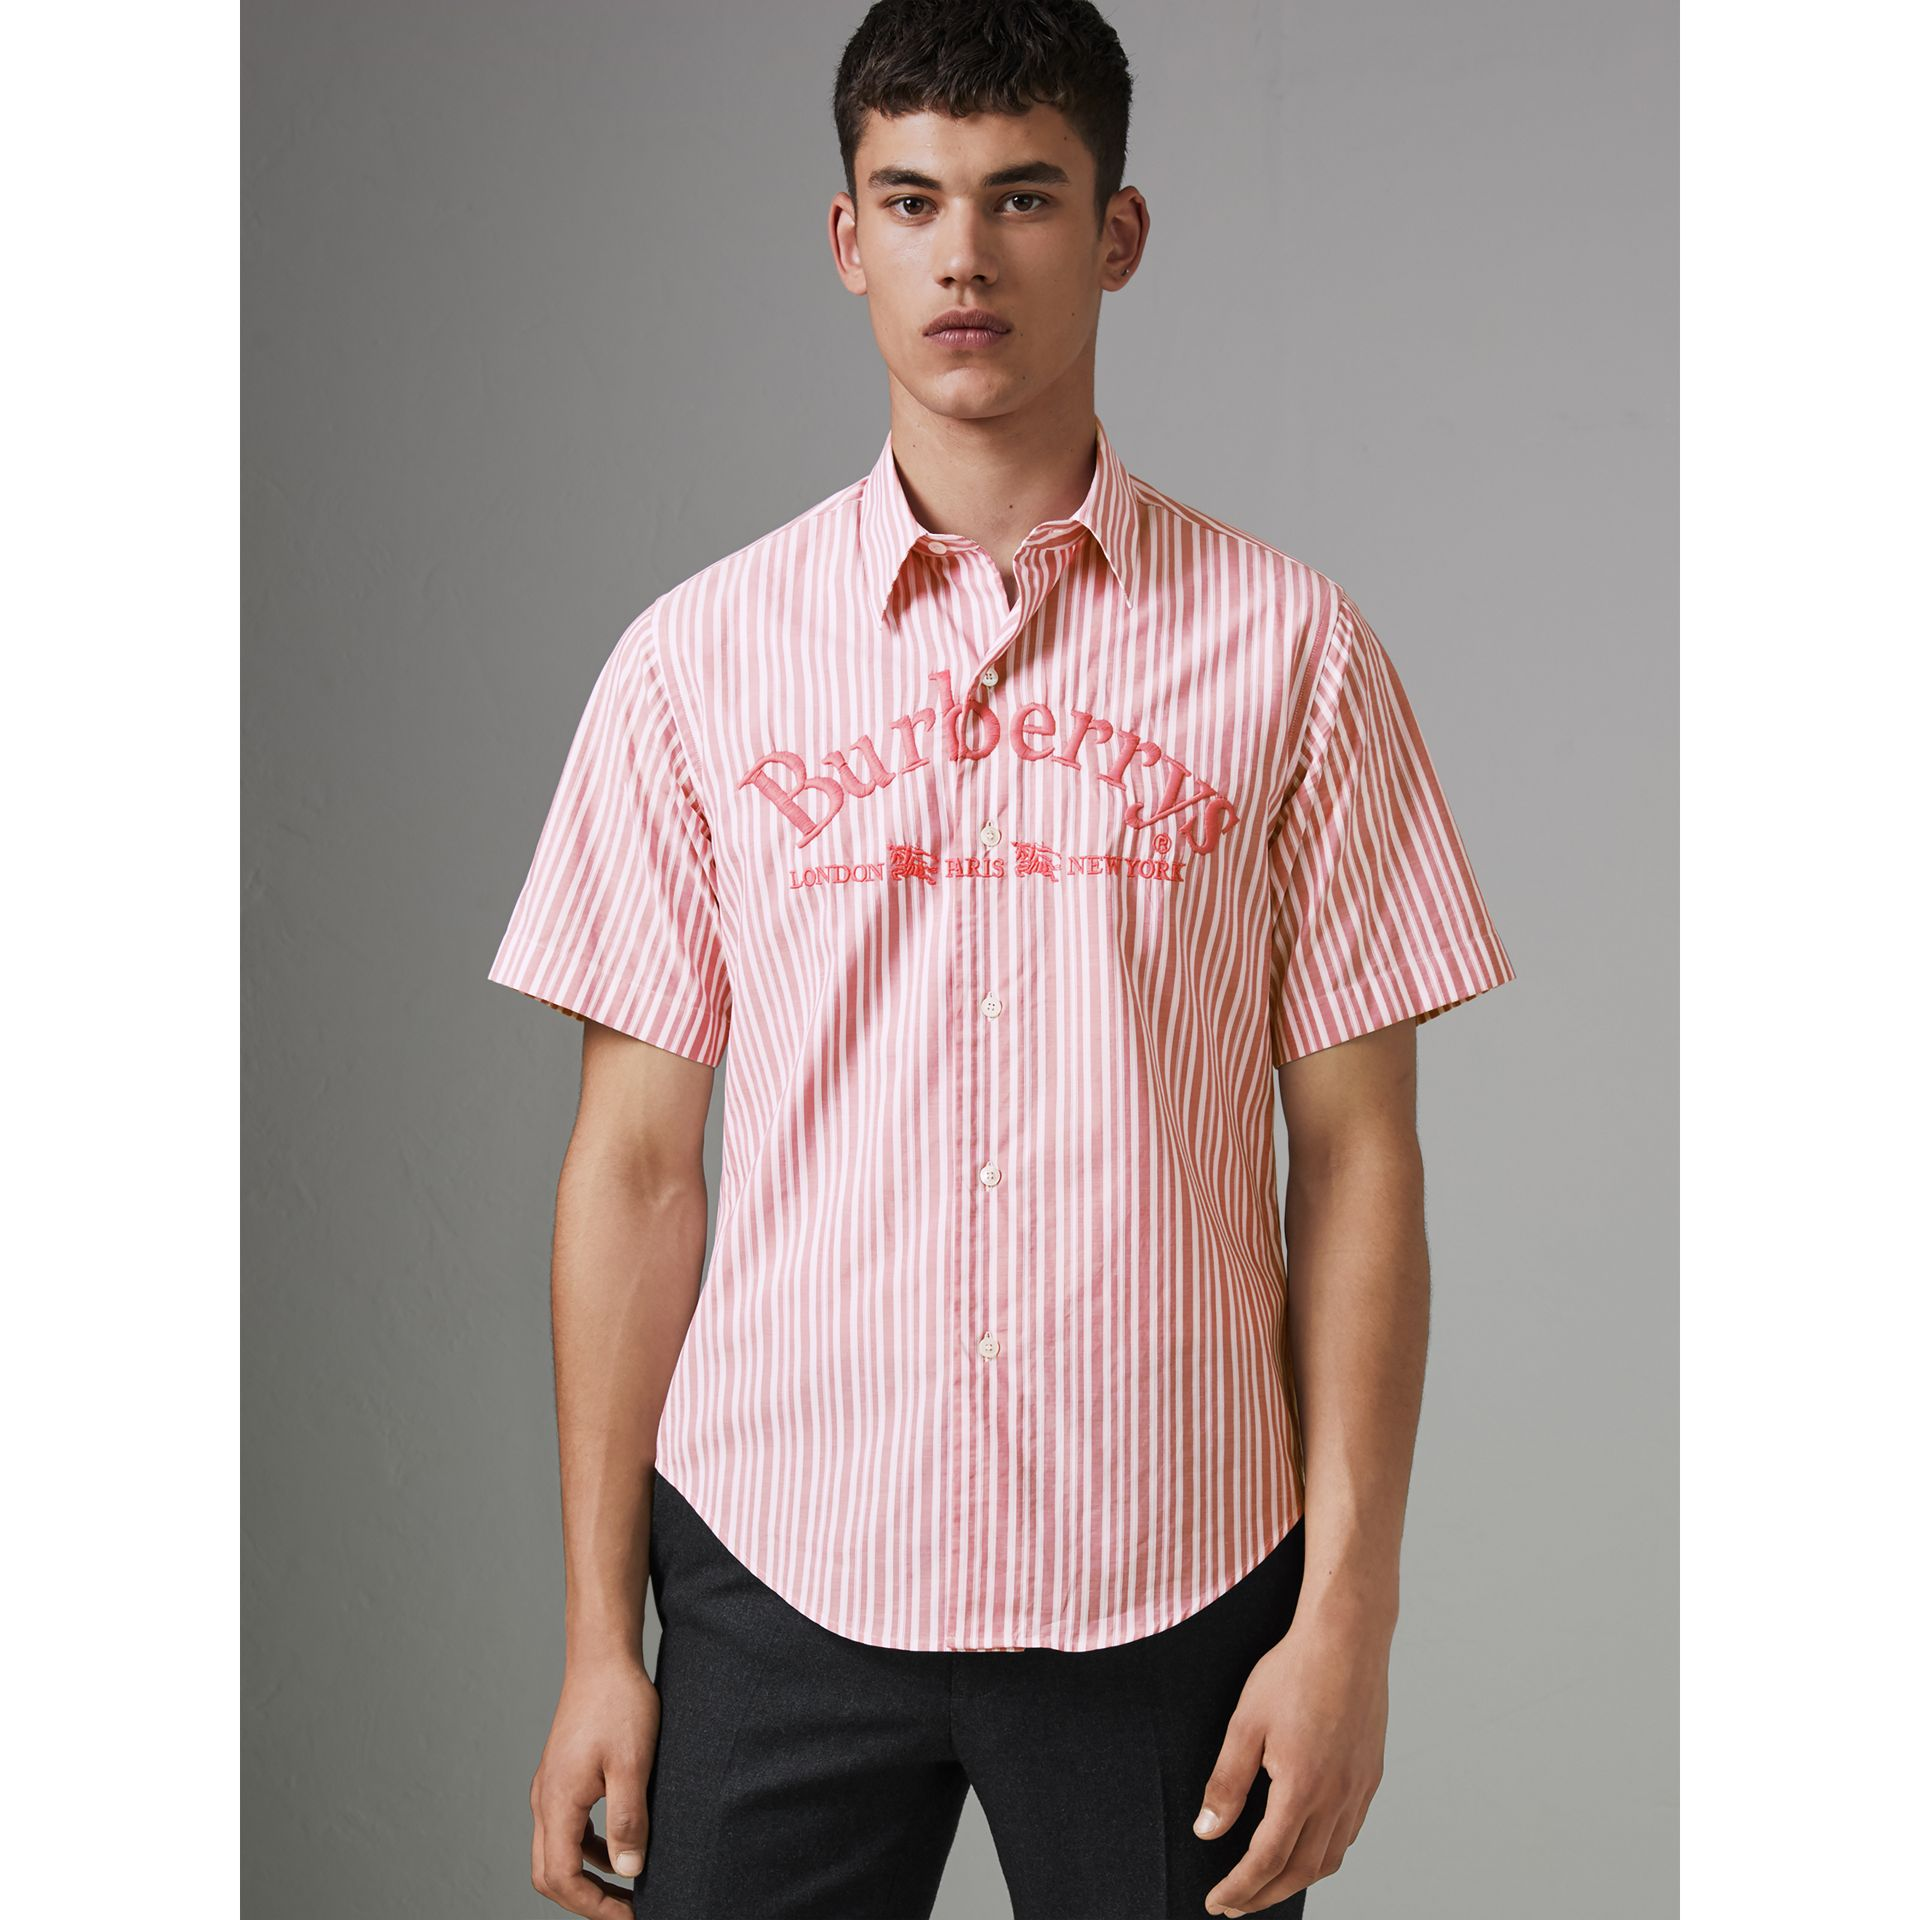 Embroidered Archive Logo Striped Short-sleeve Shirt in Light Pink - Men | Burberry - gallery image 4